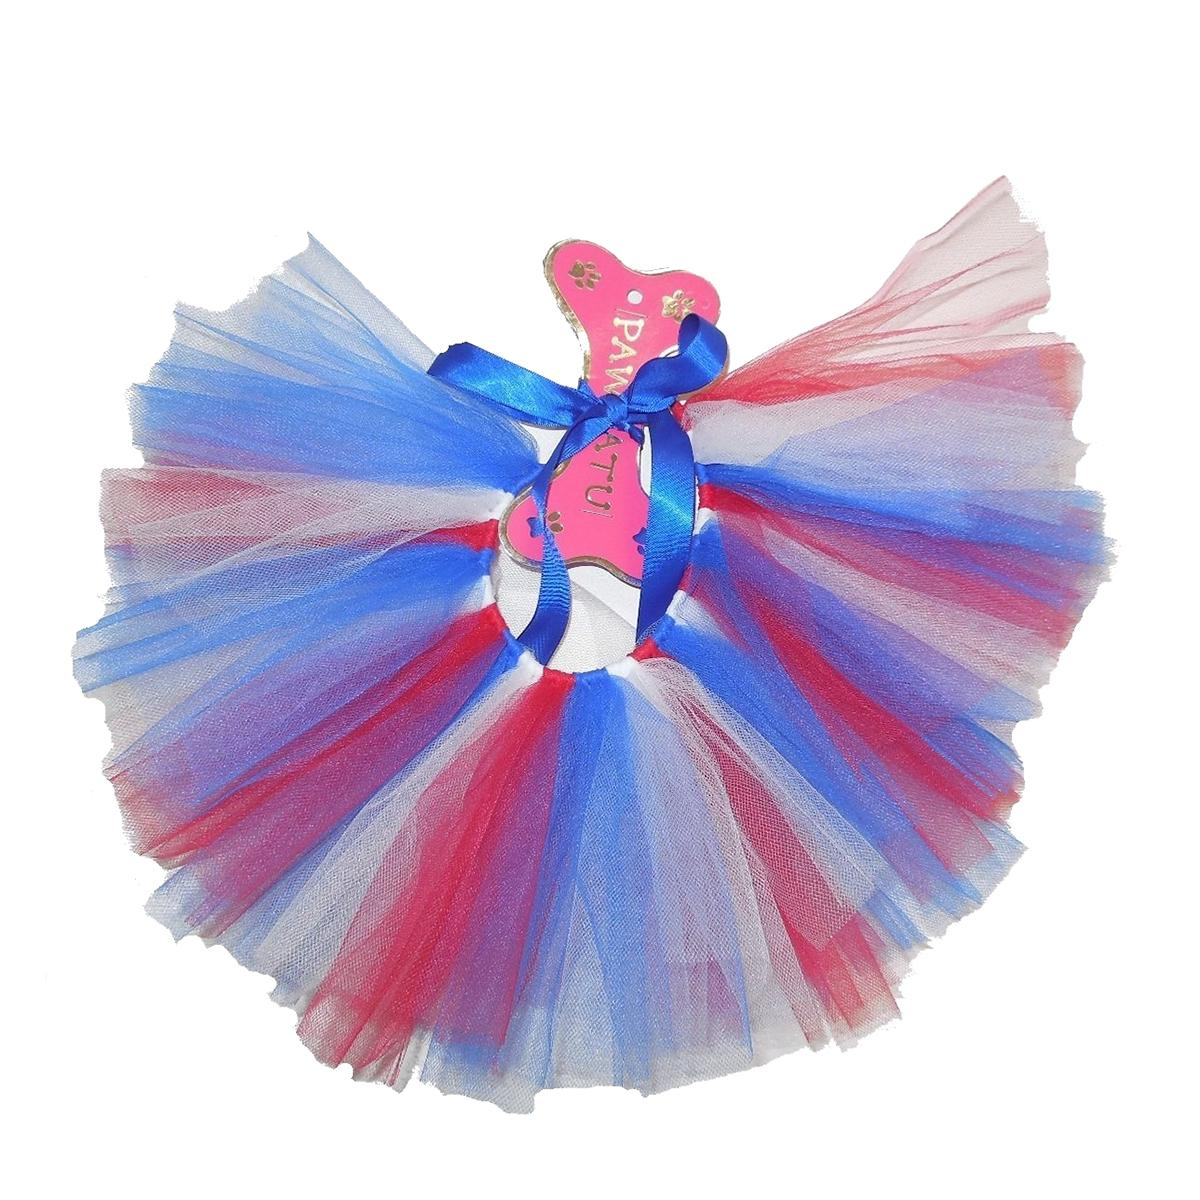 Red, White, and Blue Tulle Dog Tutu